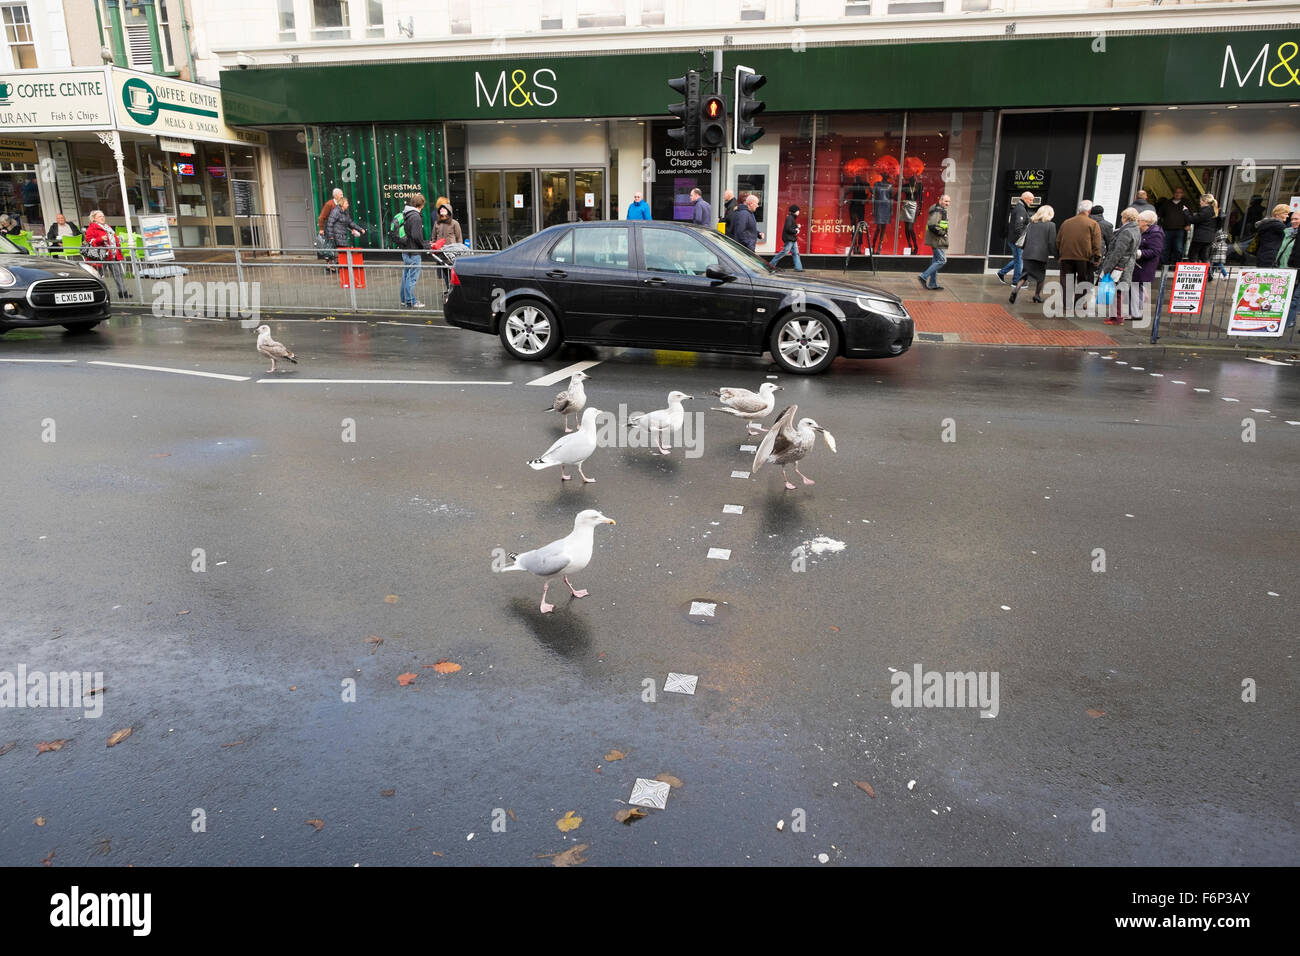 Herring gulls scavenging food off a street in Llandudno, Conwy, Wales. - Stock Image